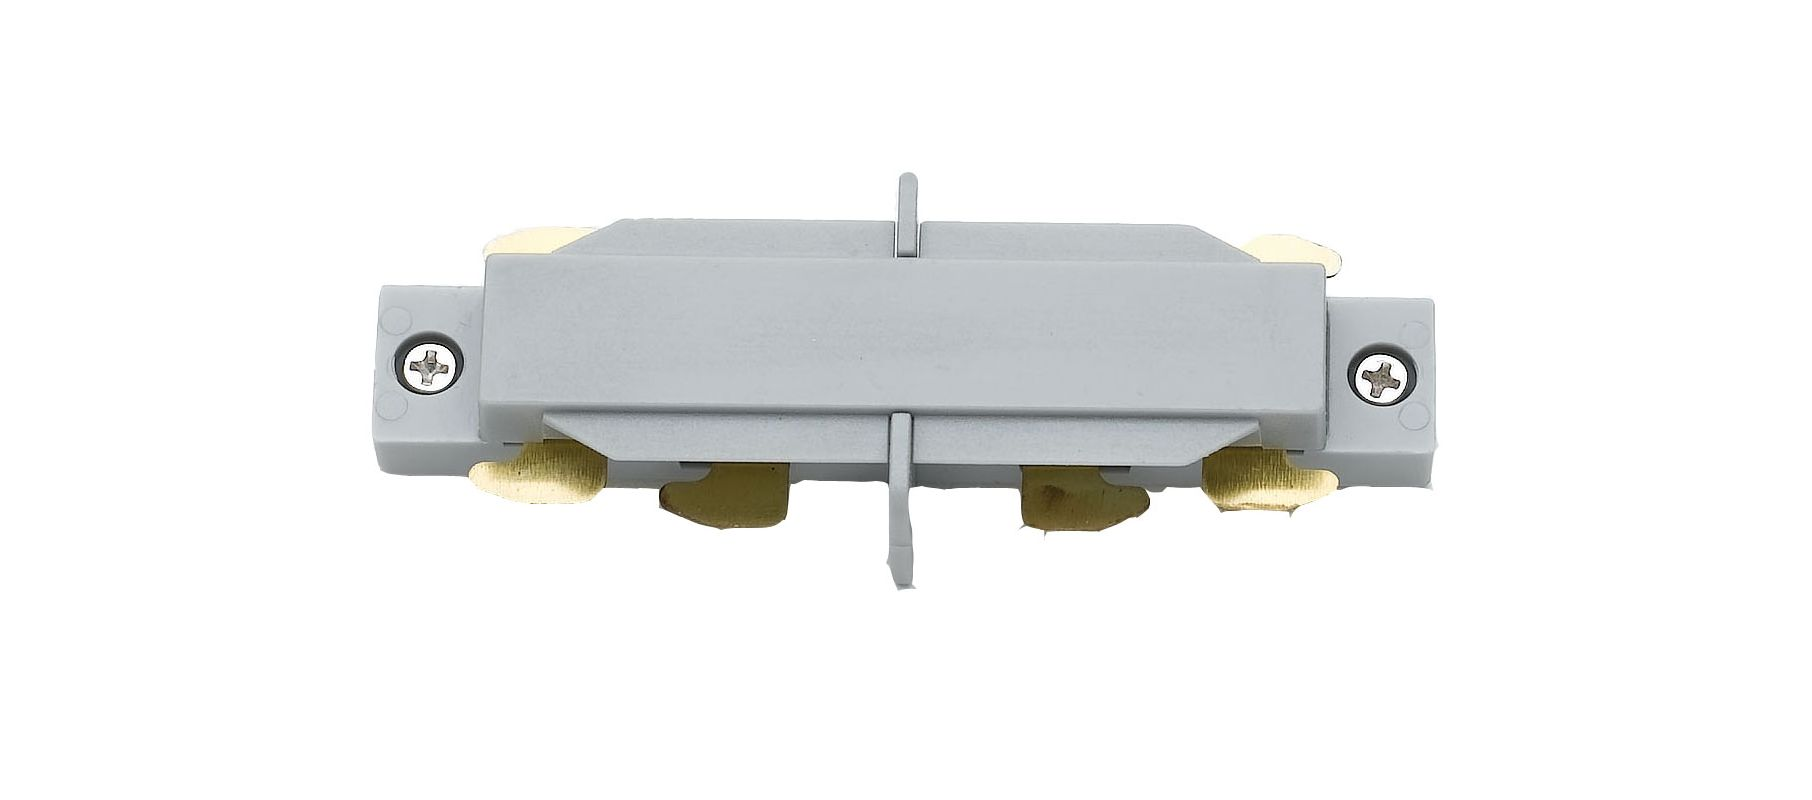 Prescolite AKTIL WH Straight Mini-Joiner for ArchiTrack Track Rail